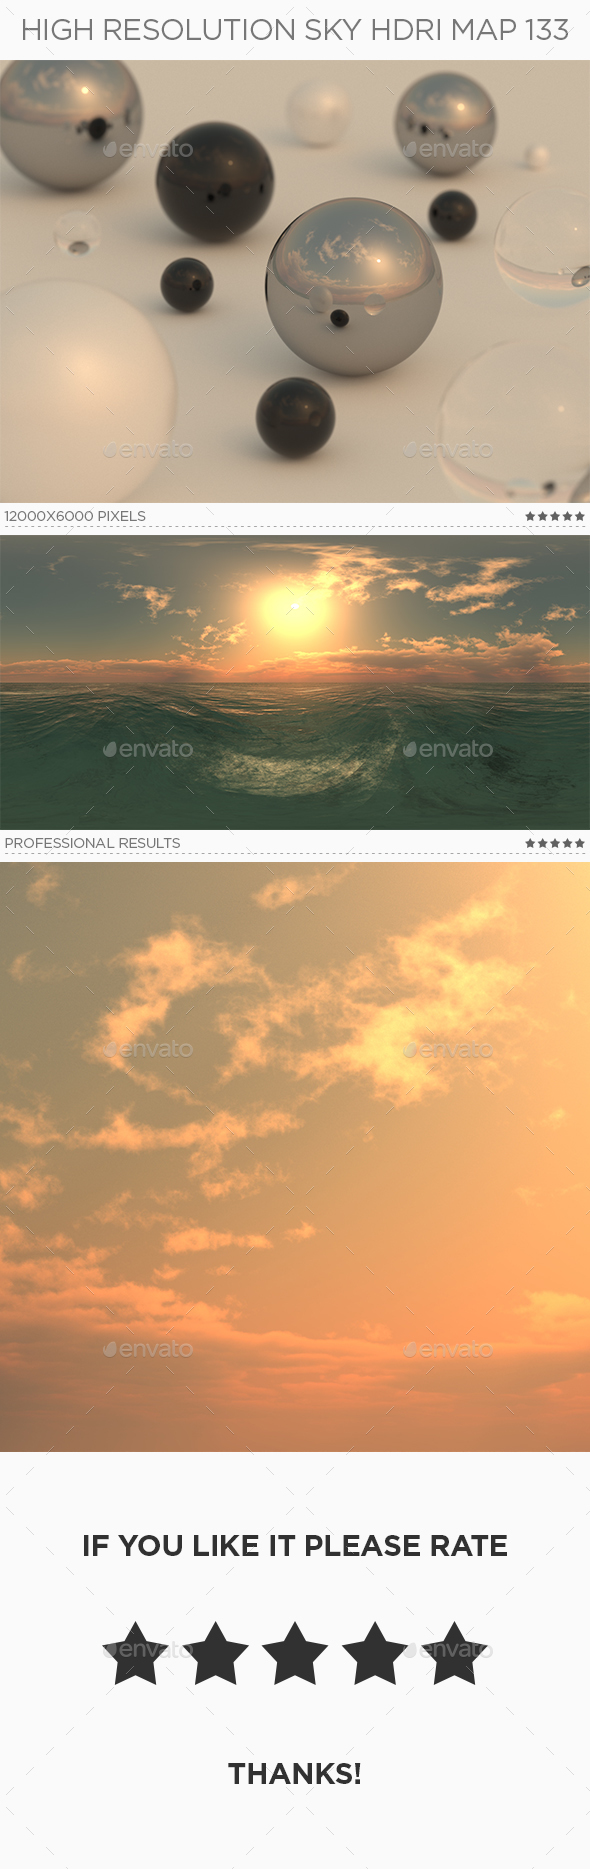 High Resolution Sky HDRi Map 133 - 3DOcean Item for Sale